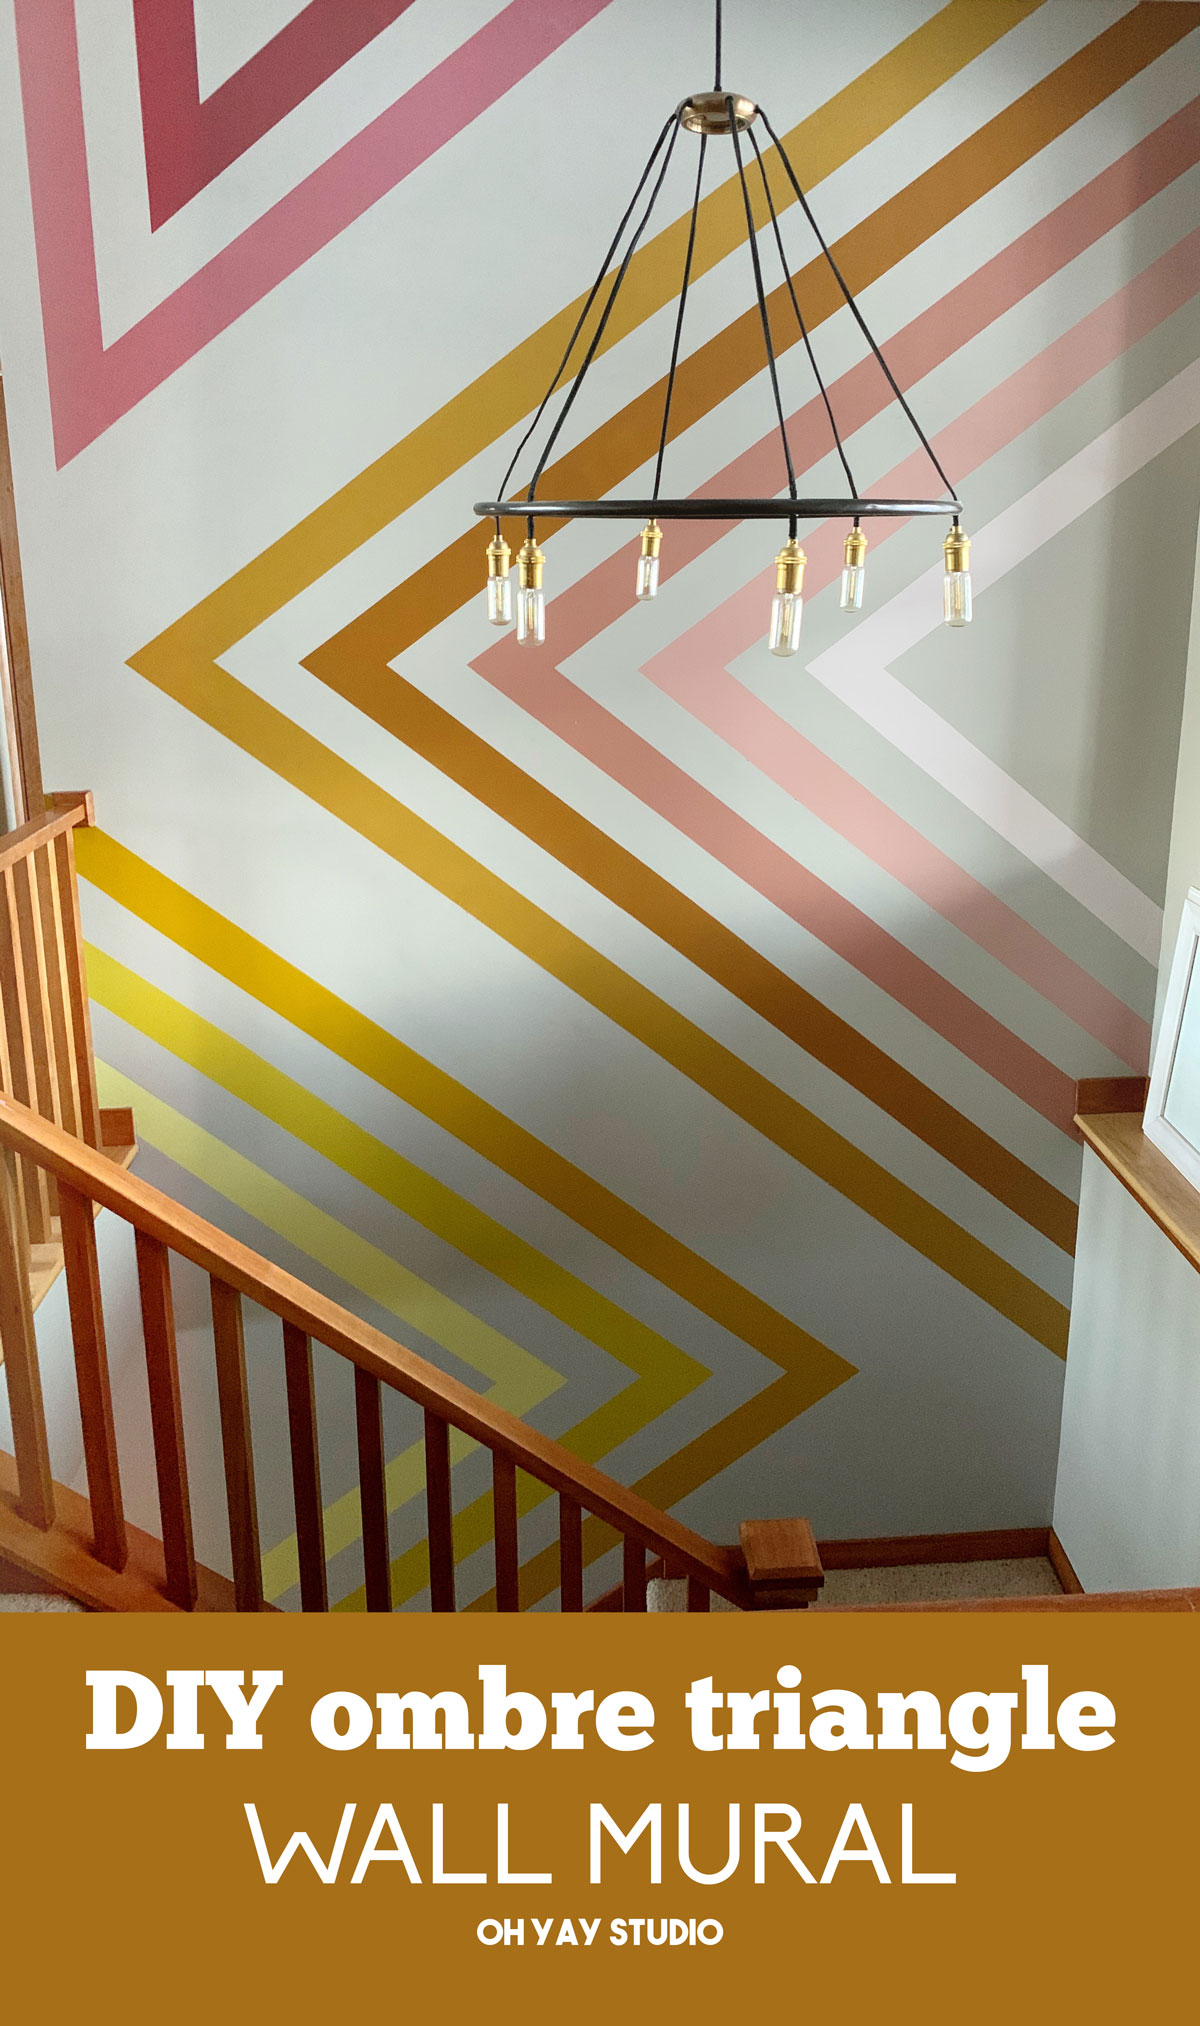 how to do a wall mural, stairway wall mural, stairway DIY painting, DIY painting, painting project, oh yay painting